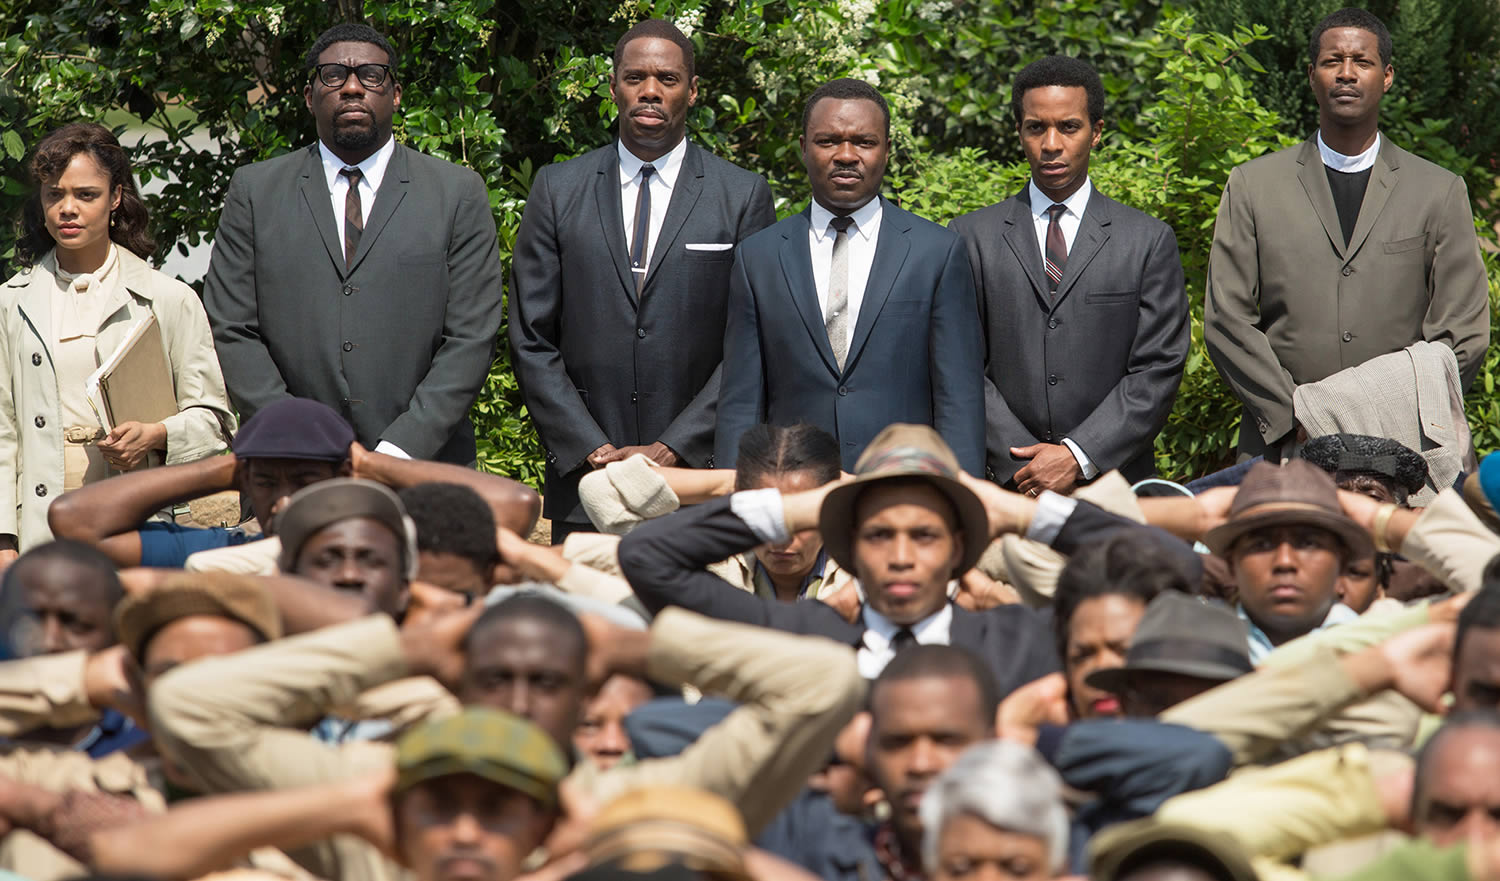 men in blue suits in movie selma